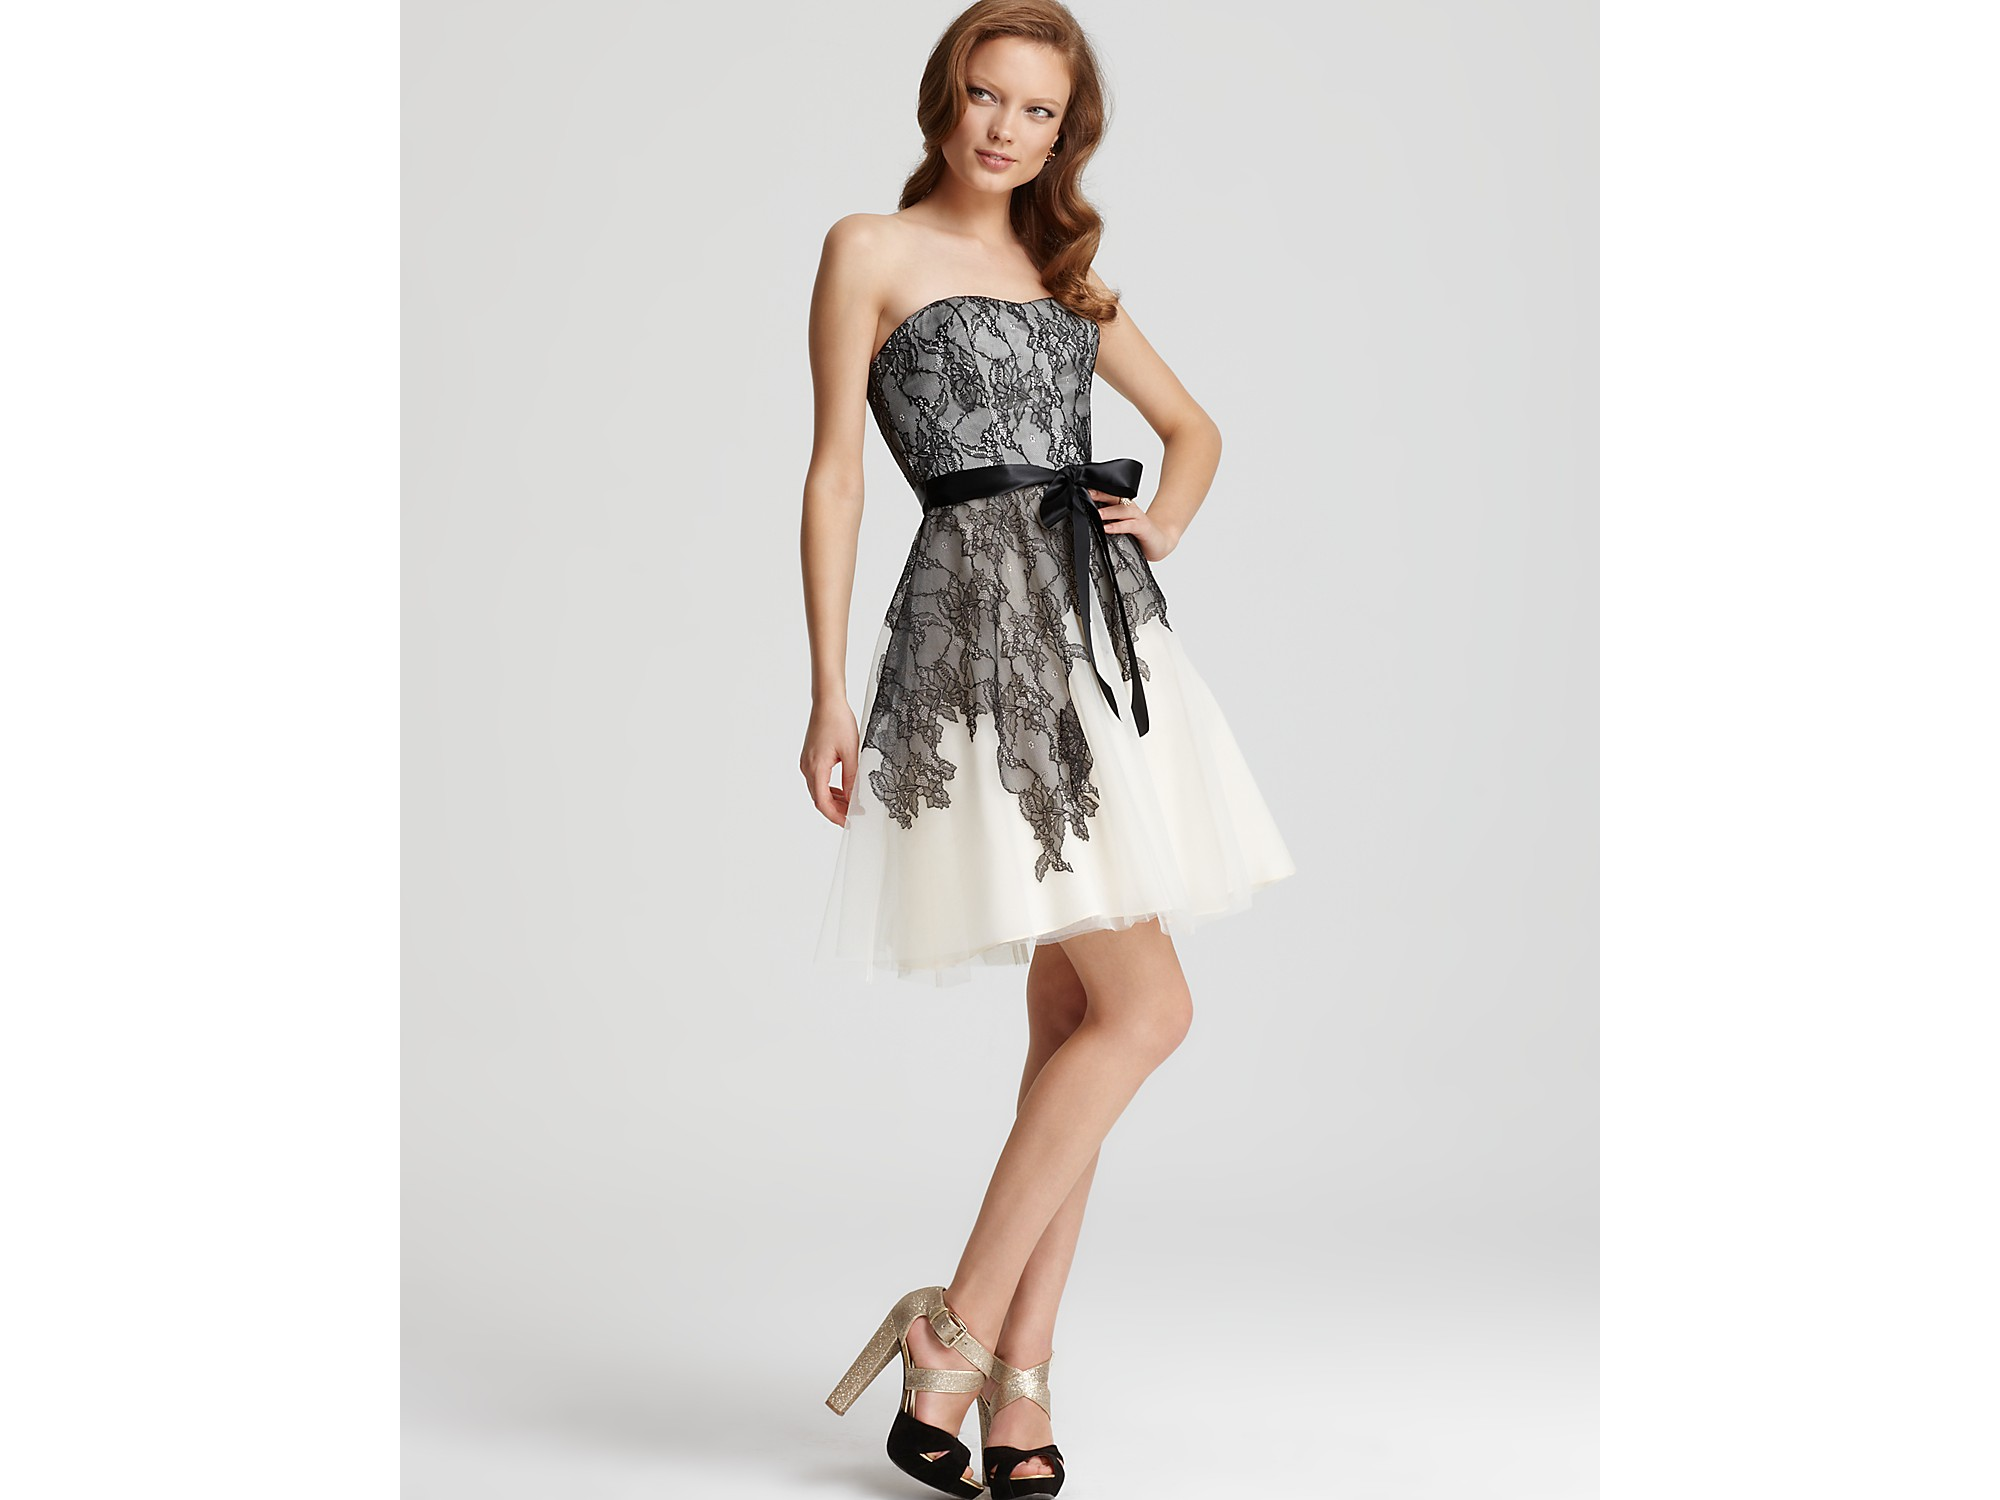 Lyst - Max & Cleo Dress Cynthia Lace and Tulle in Natural